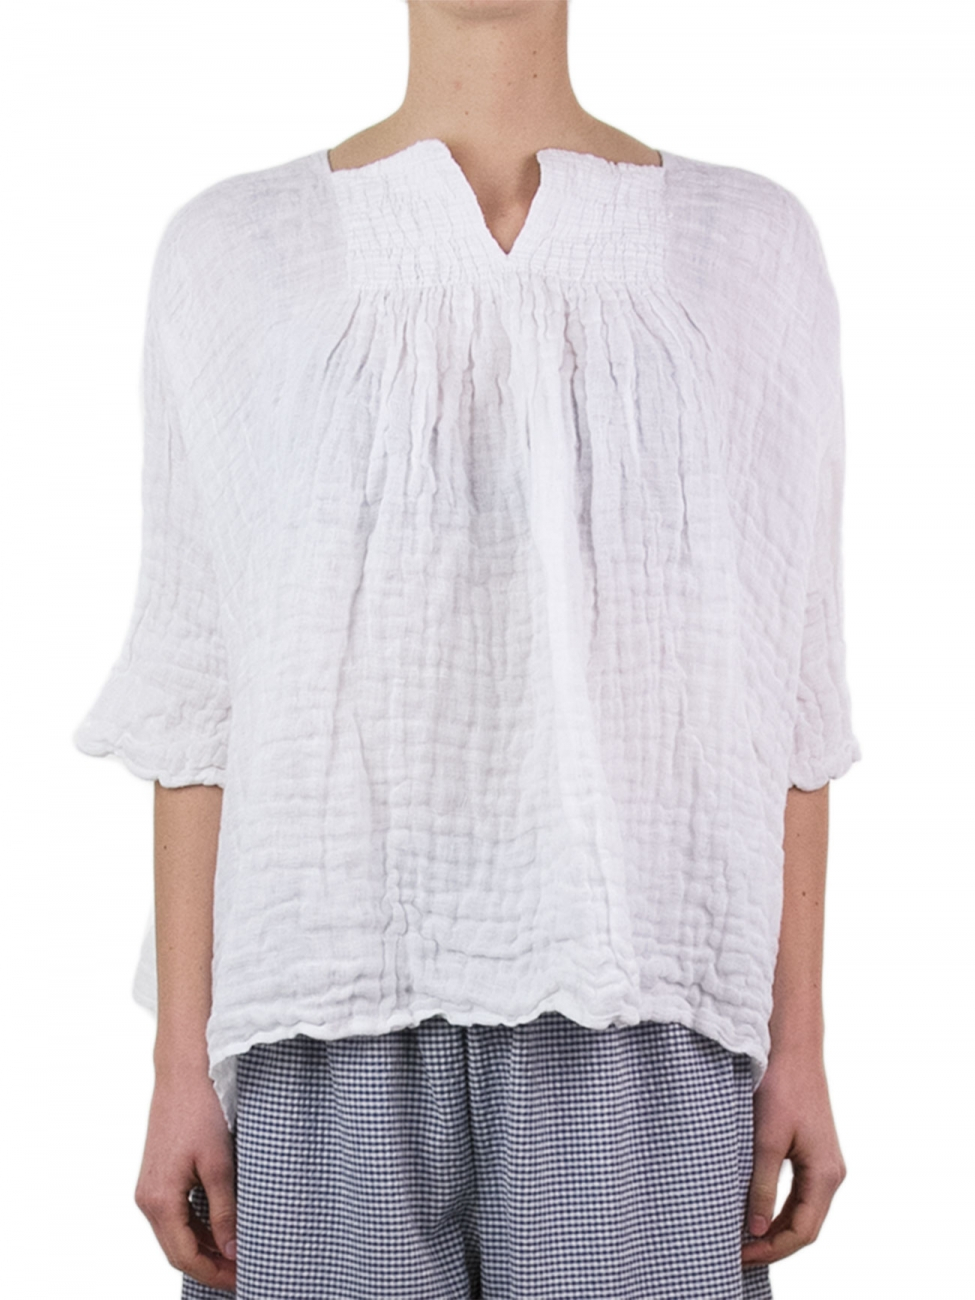 Daniela gregis White Linen Blouse in White | Lyst